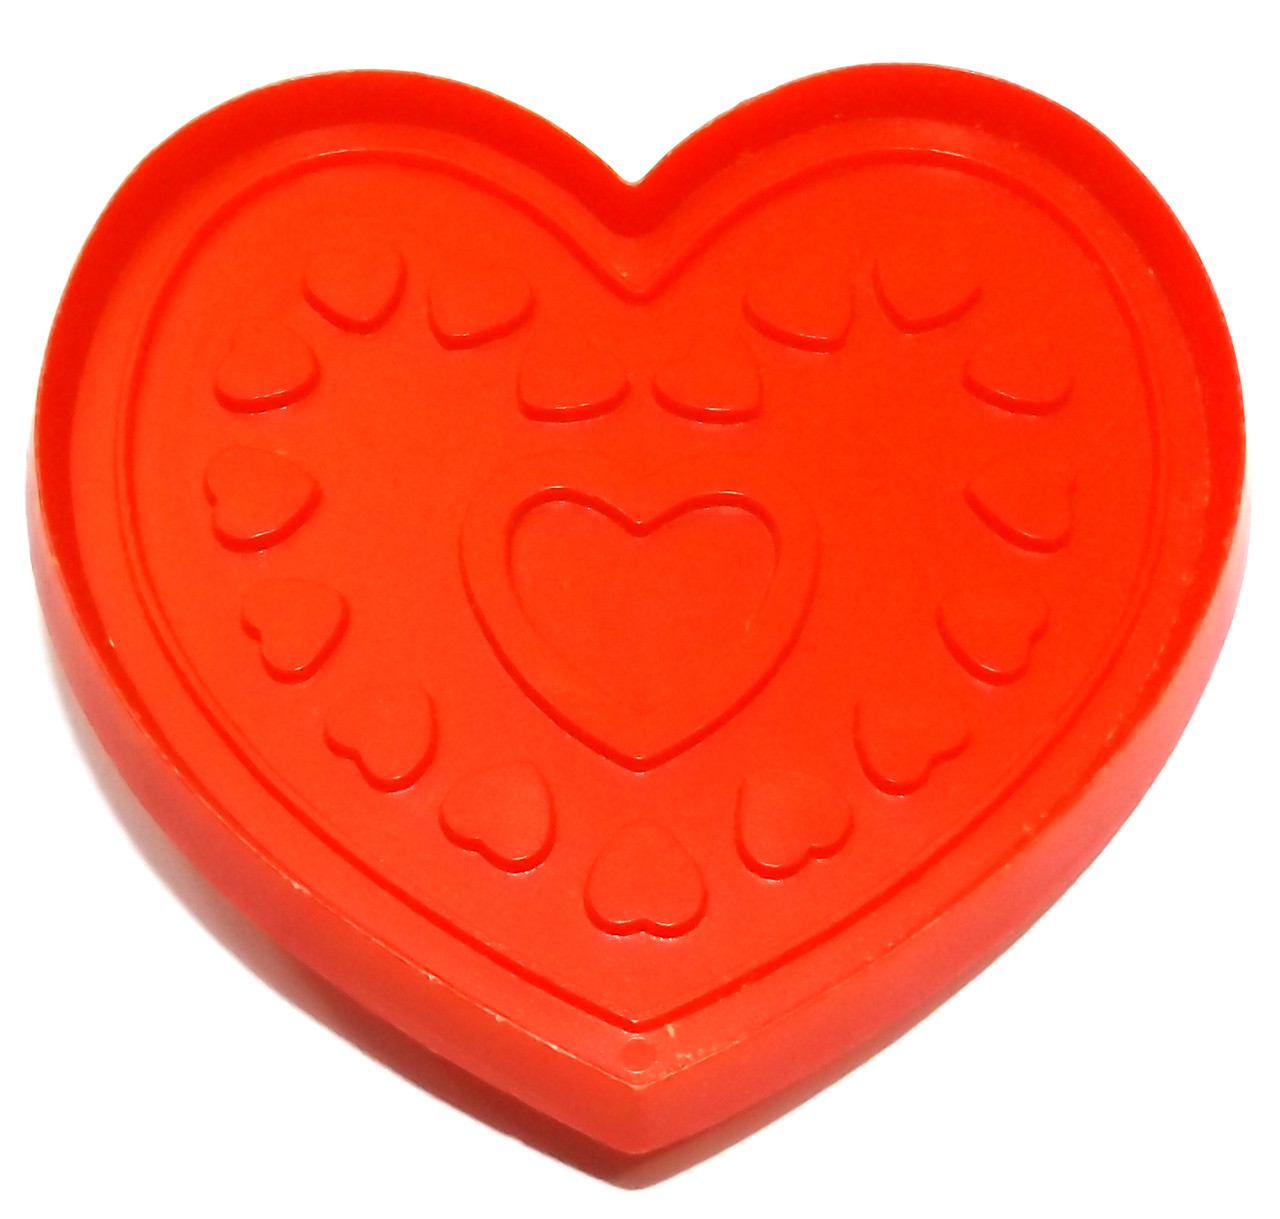 Vintage Hallmark Heart Shaped Impression Cookie Cutter